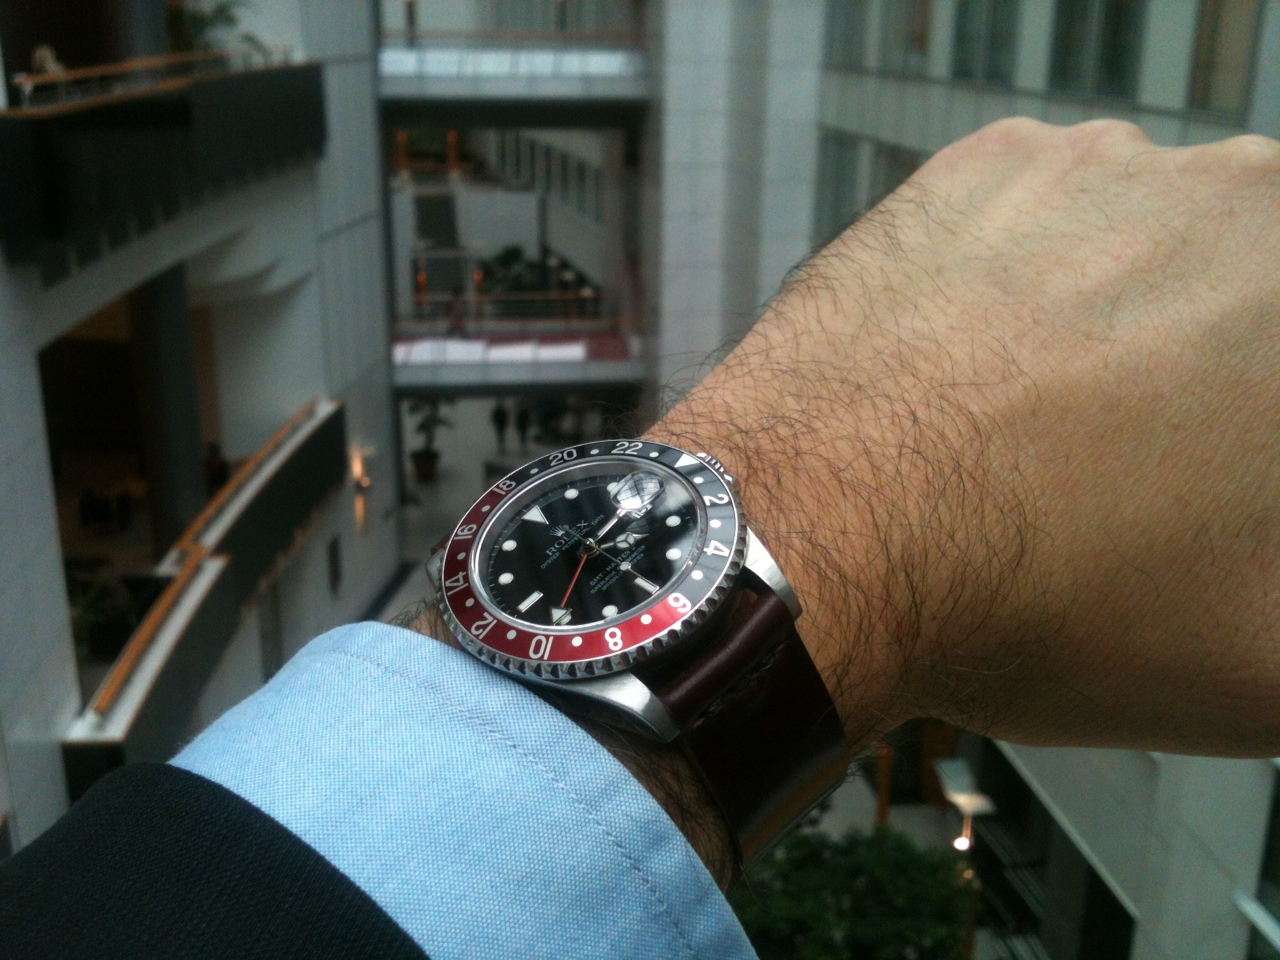 GMT Master II on a two-piece in No. 8 with partial seam. This Rolex works in the European Parliament building.